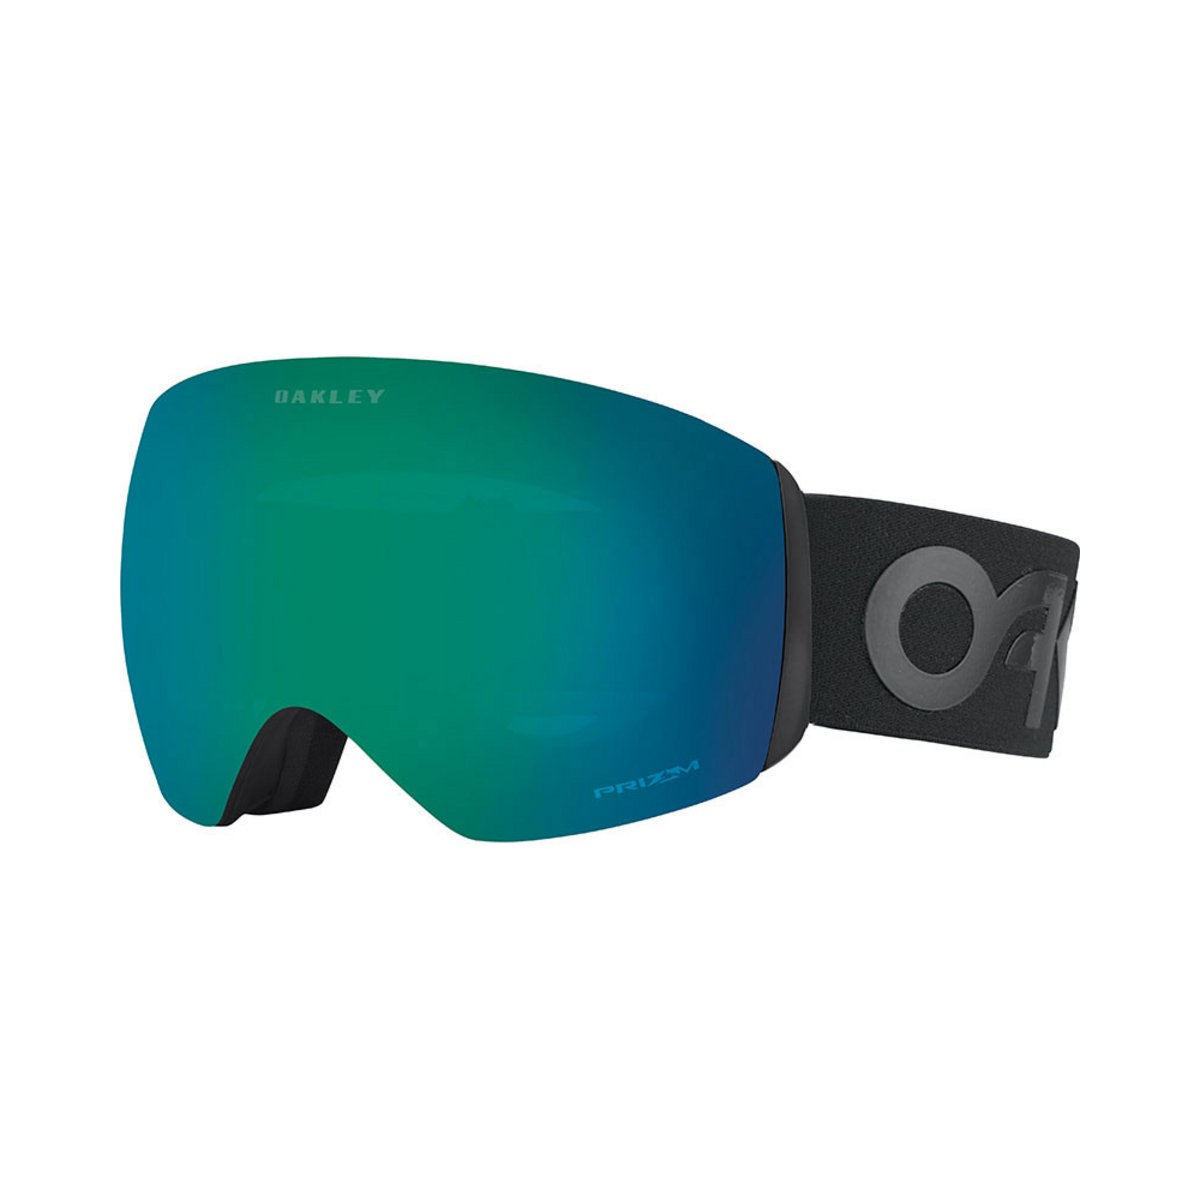 Oakley Flight Deck Factory Pilot Blackout / Prizm Jade Iridium Goggles 2019 / 2020 0